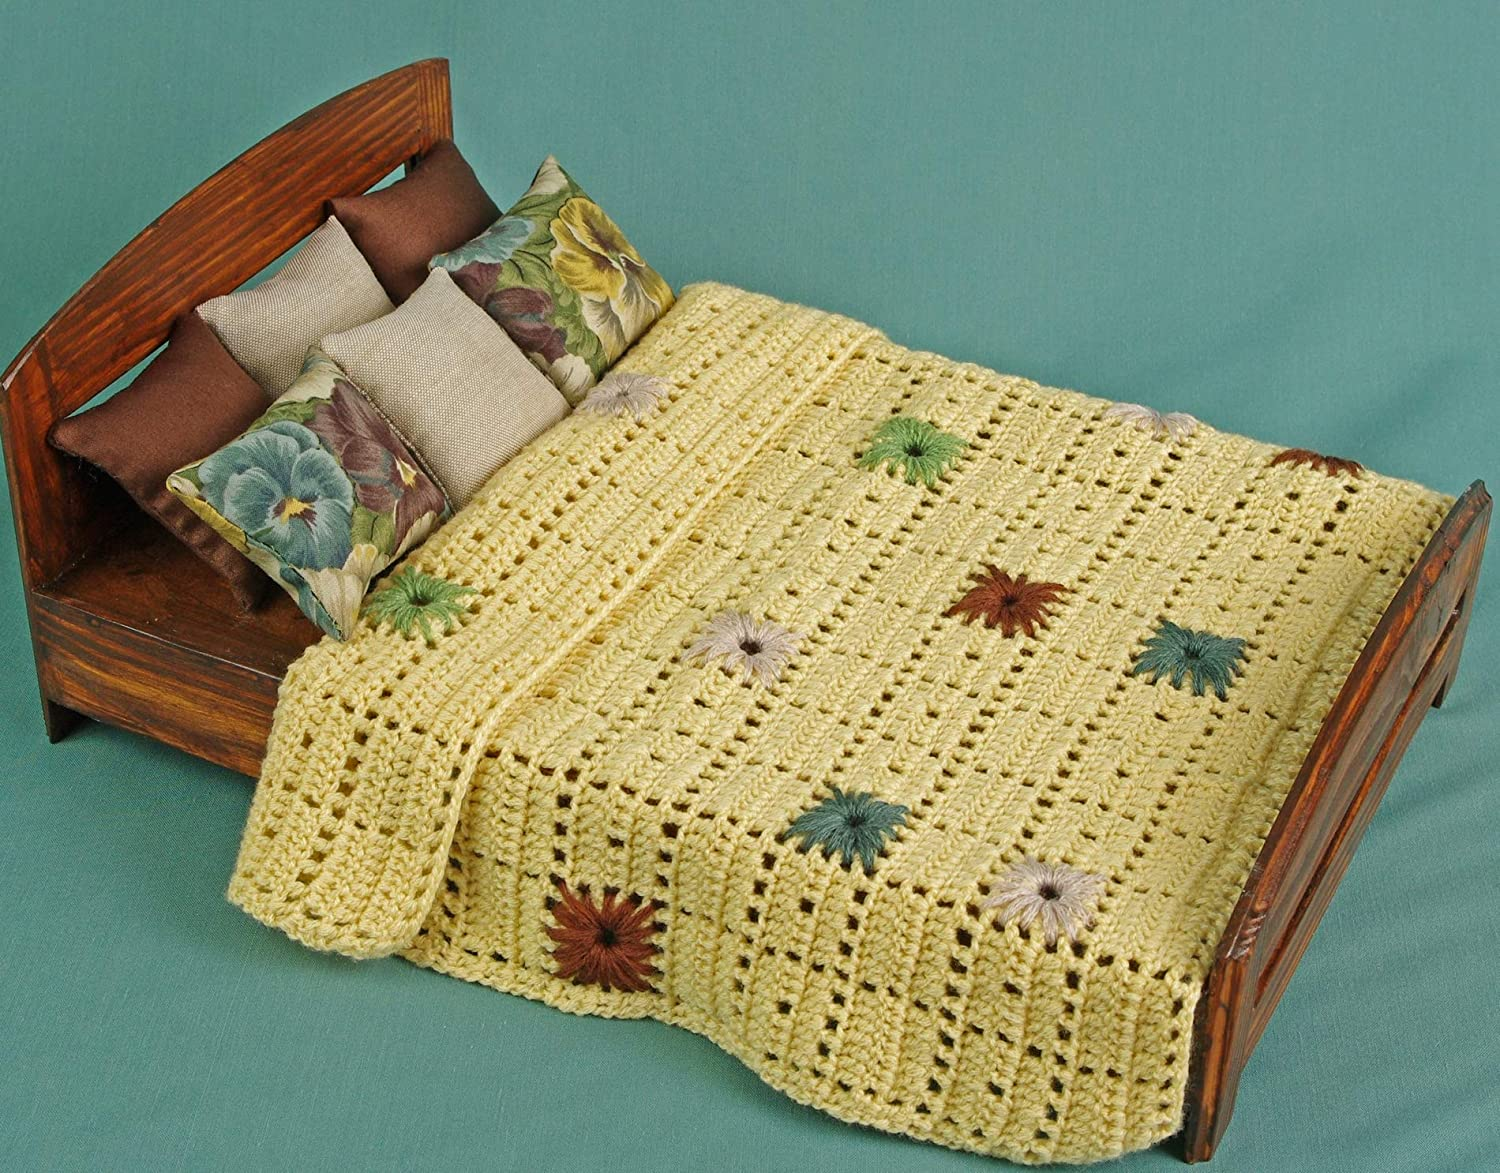 Pillows blanket set dollhouse miniature 1//6 Size 1:6 play-scale for Barbie Blythe 12 inch dolls coverlet miniature dolls accessories